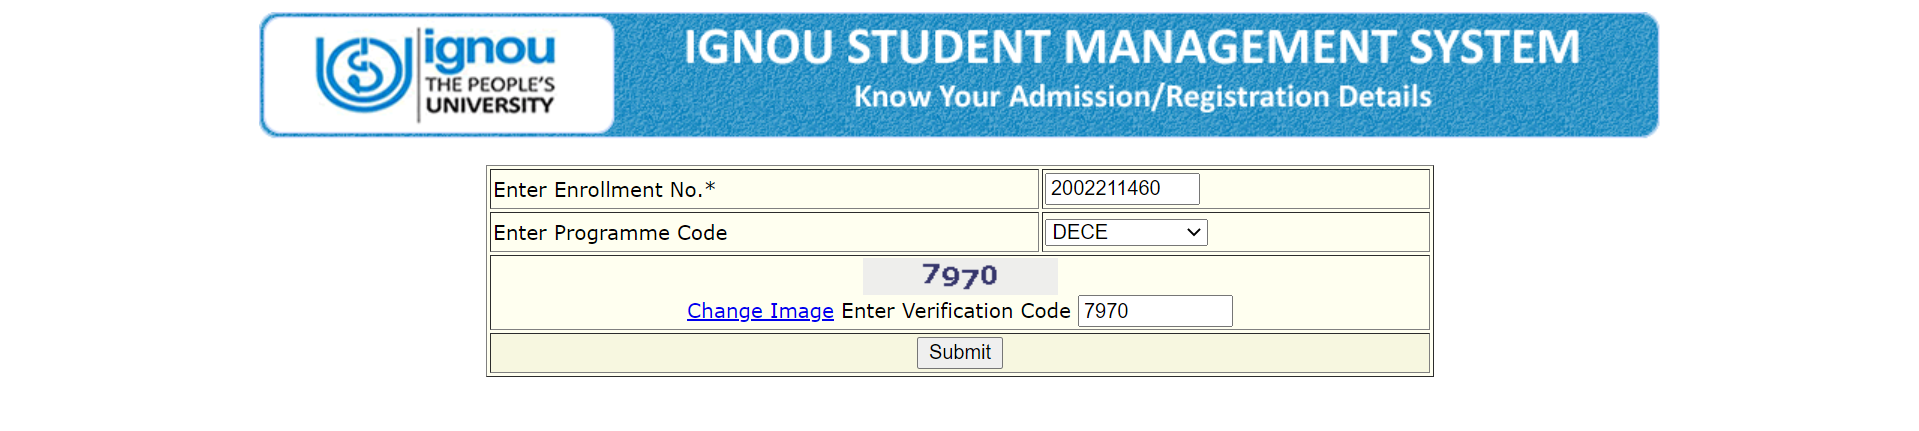 ignou admission status page look like this